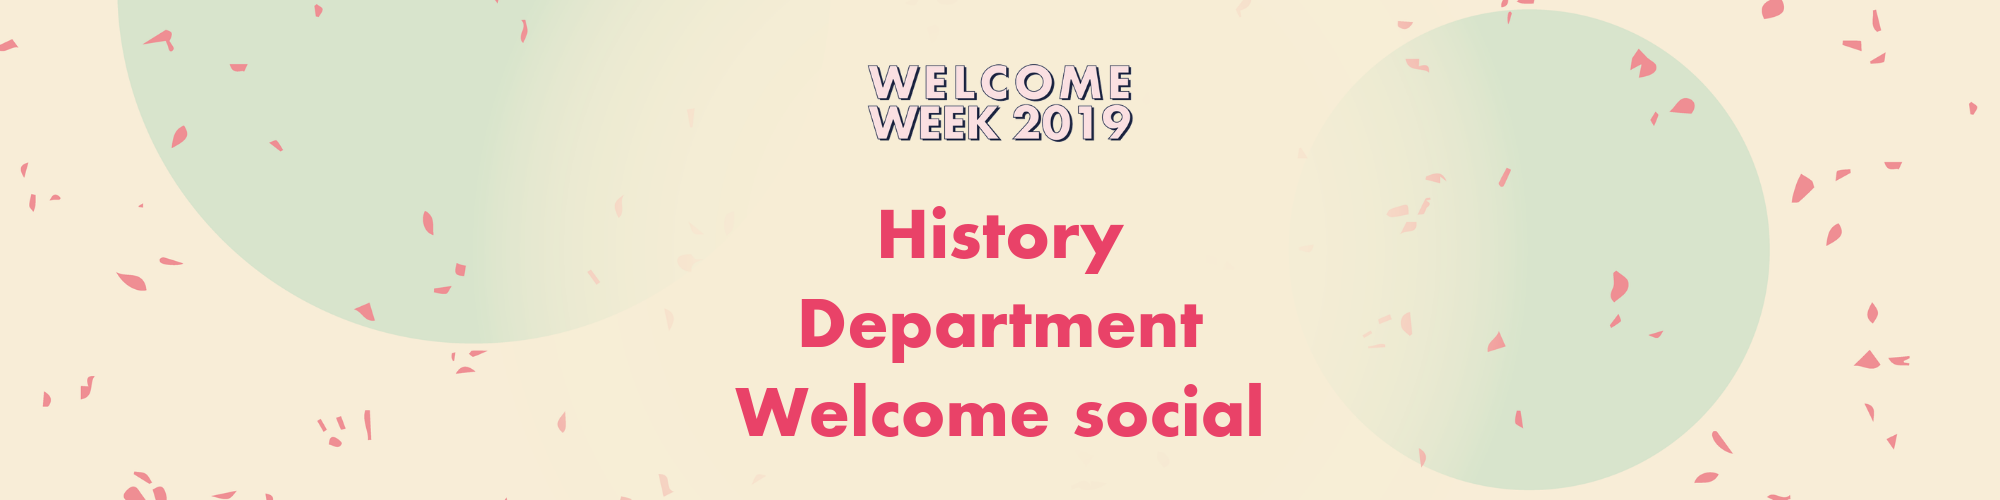 History Department Welcome Social